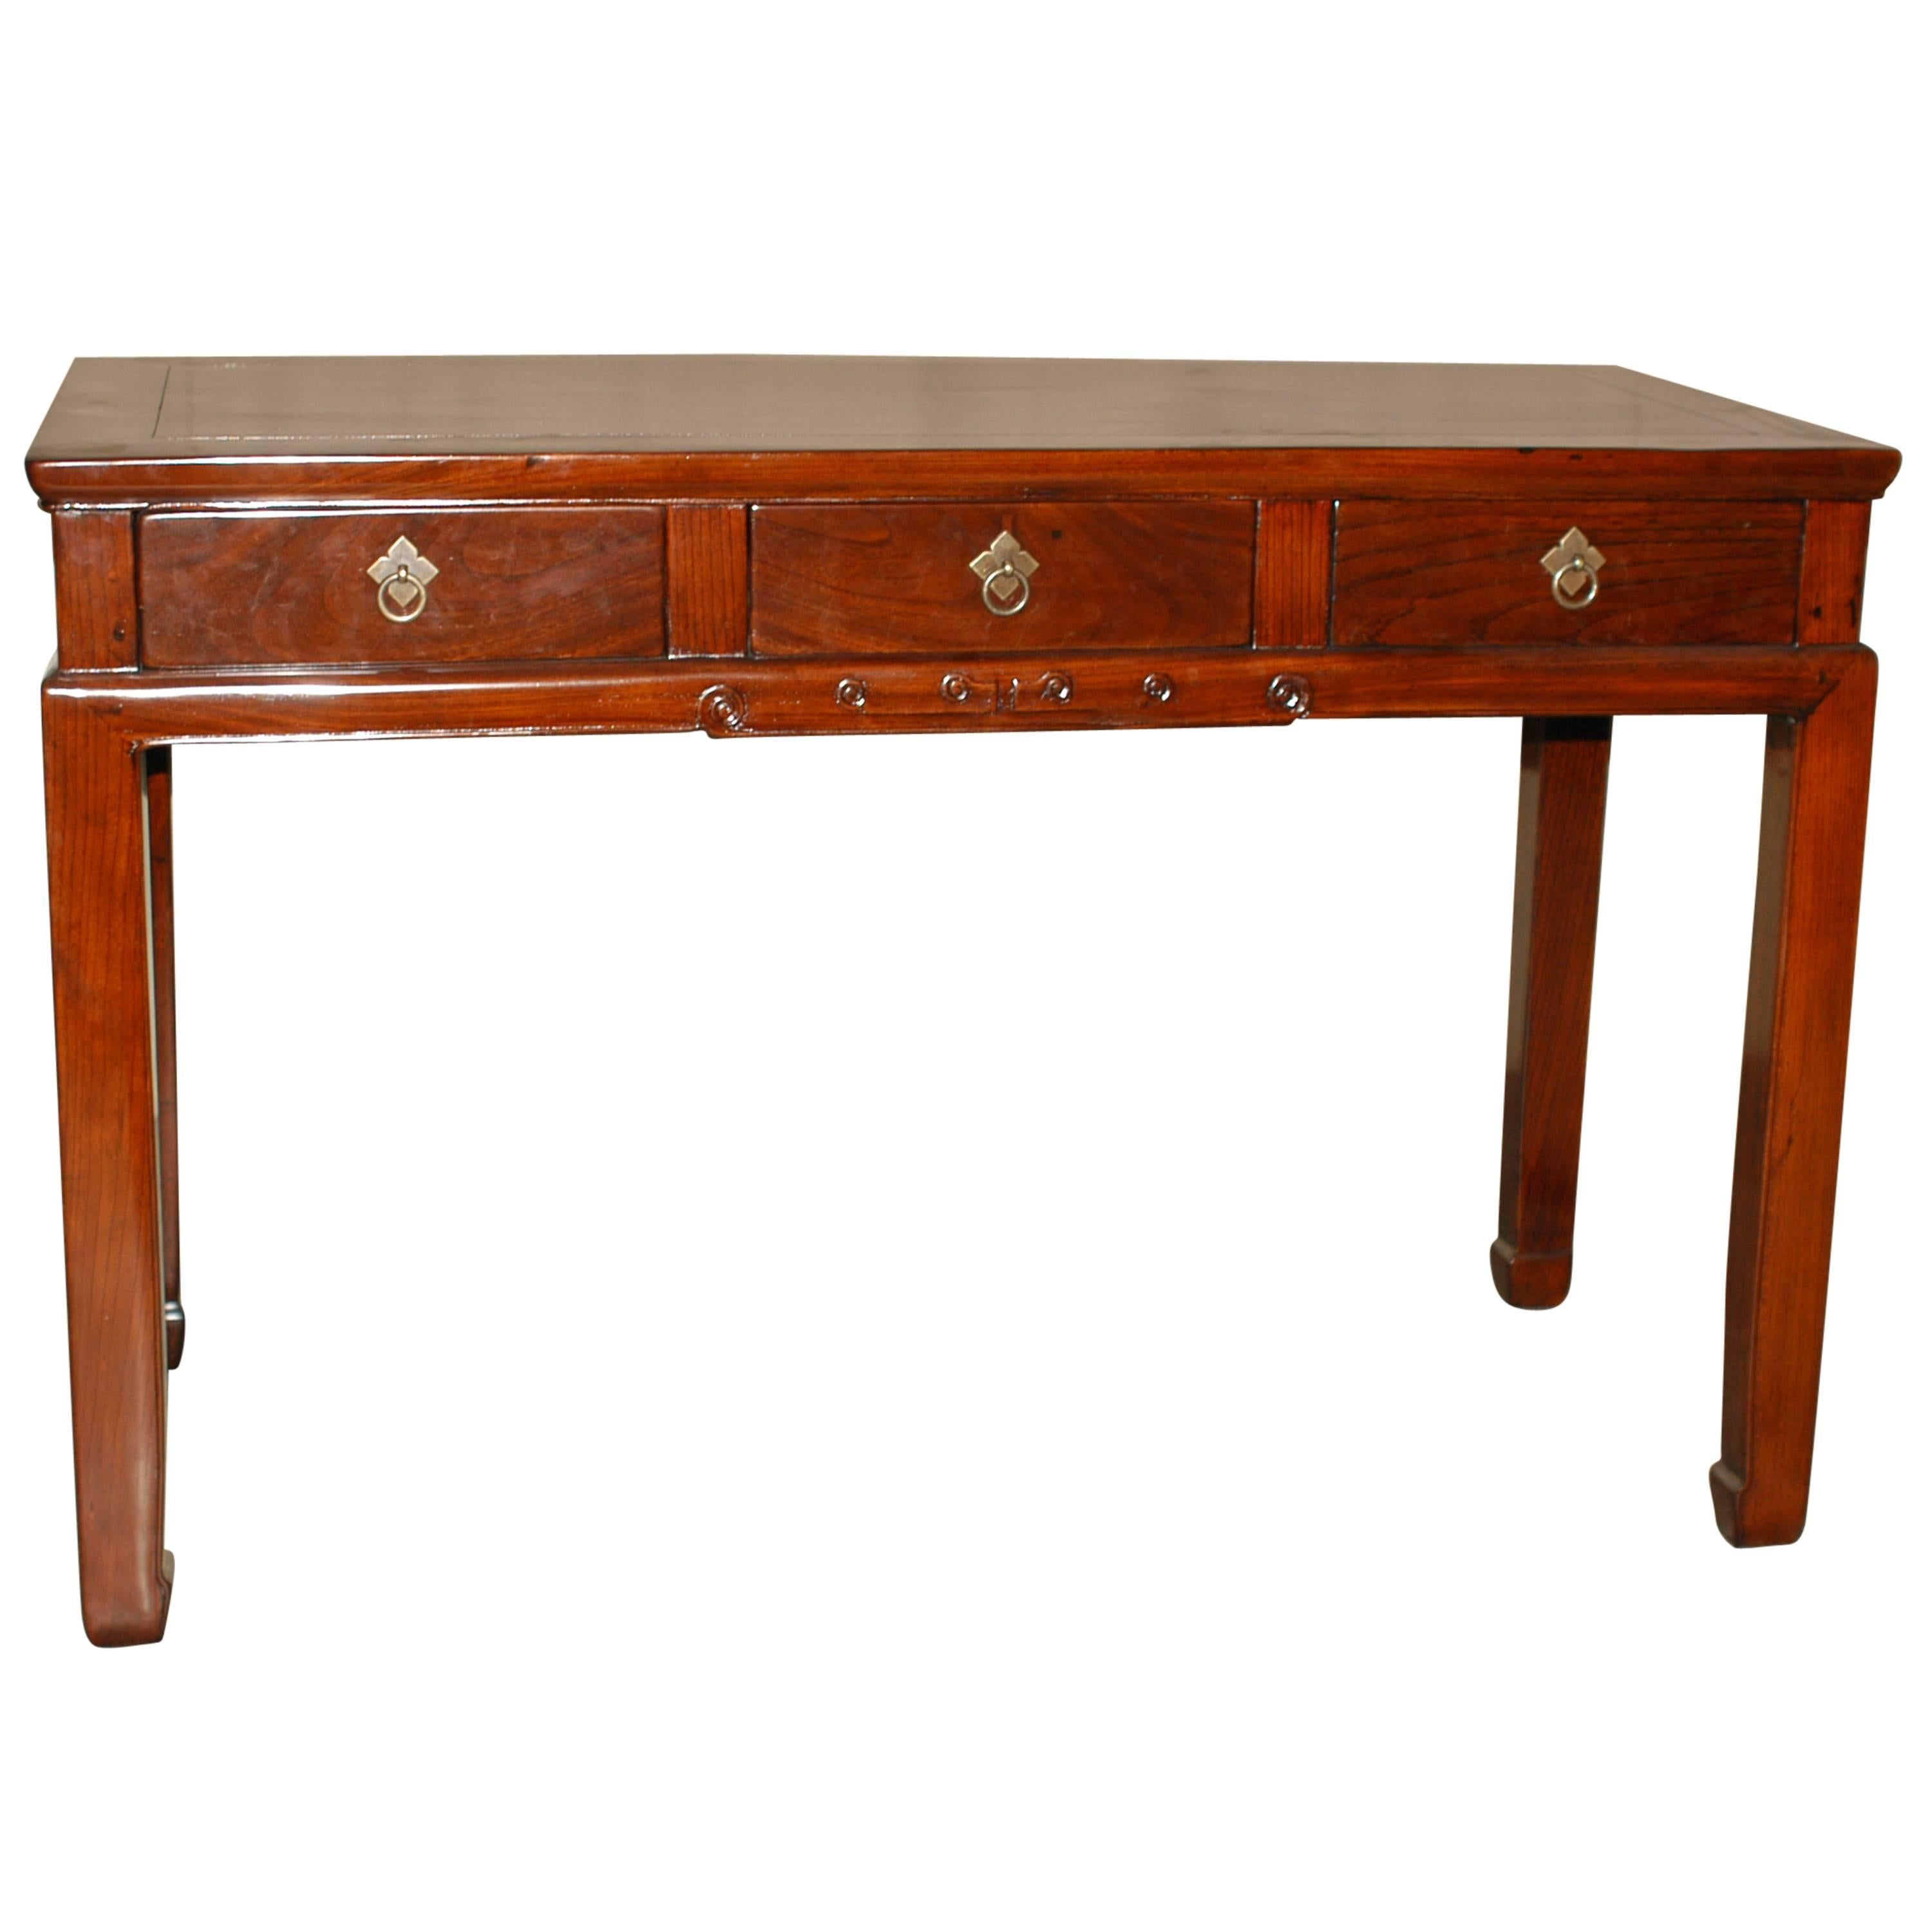 Fine Jumu Console Table With Drawers For Sale At 1stdibs